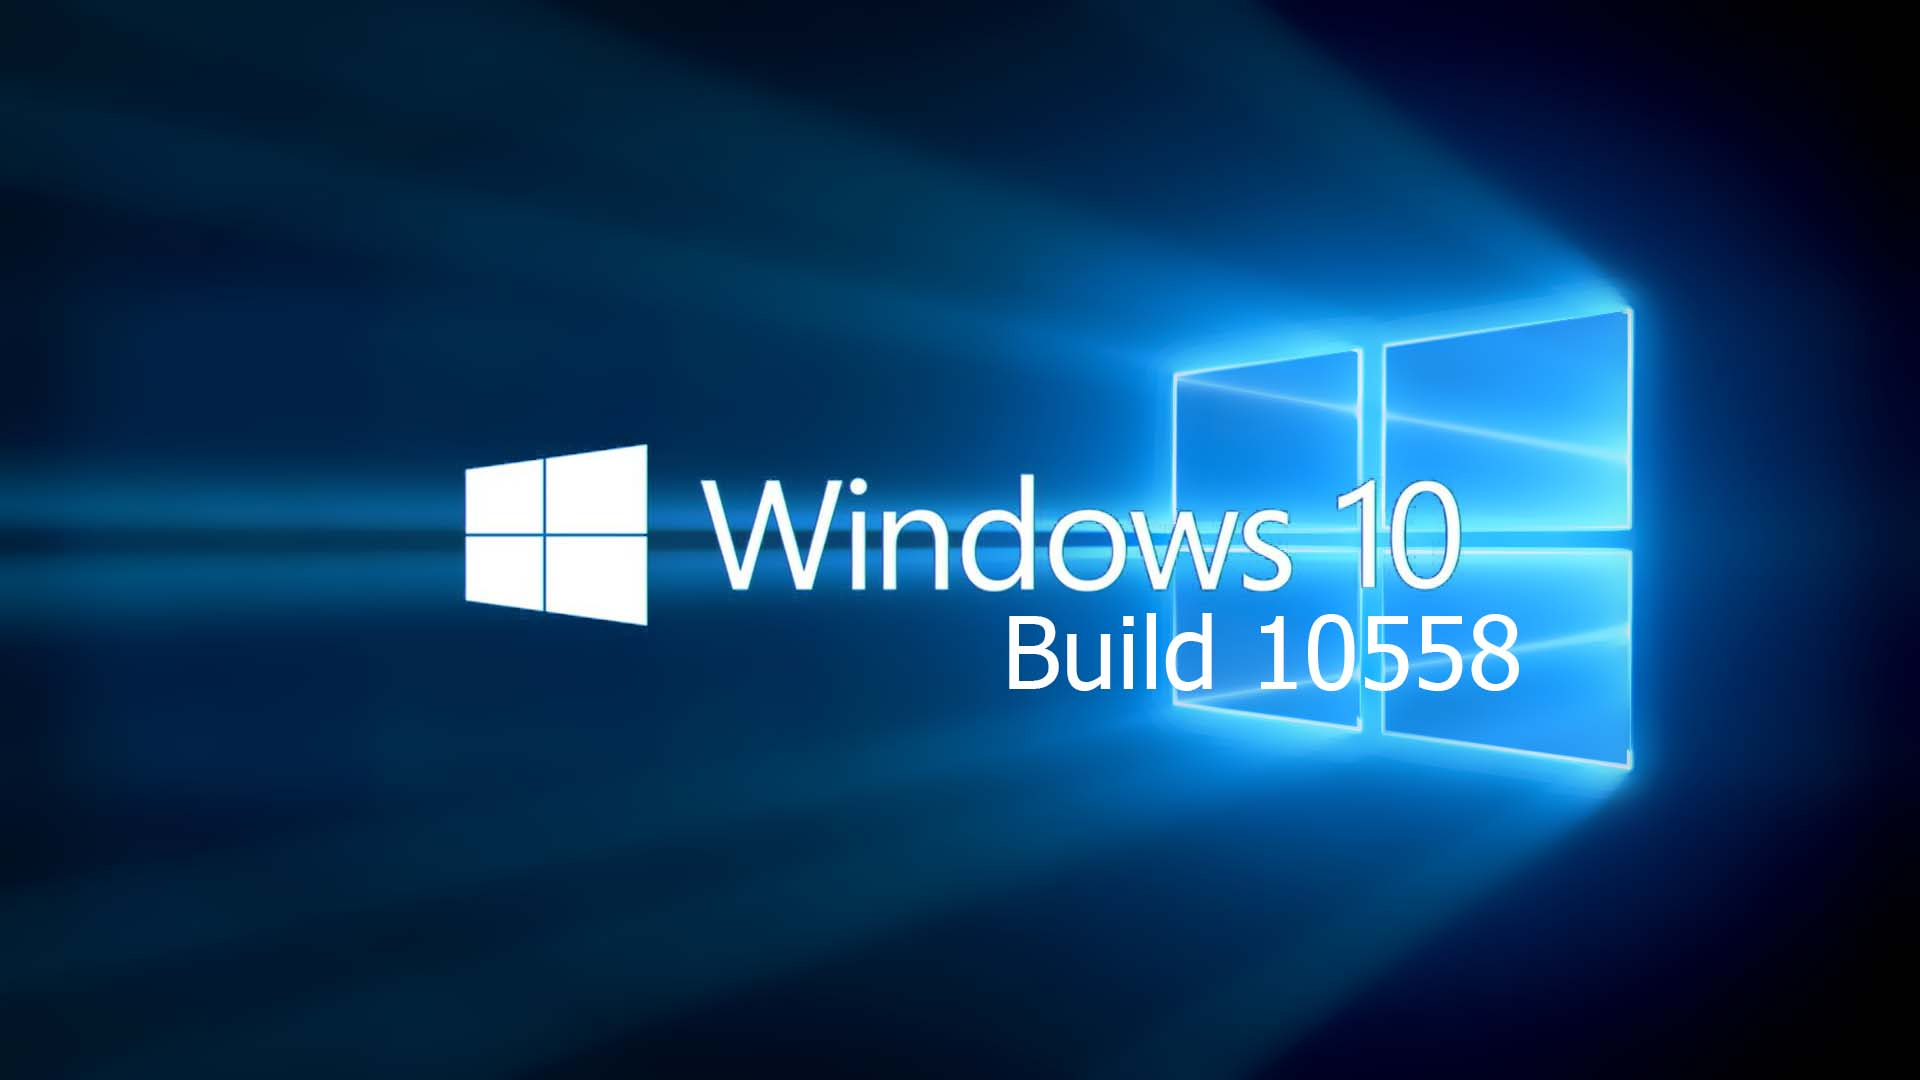 Windows 10 Build 10558